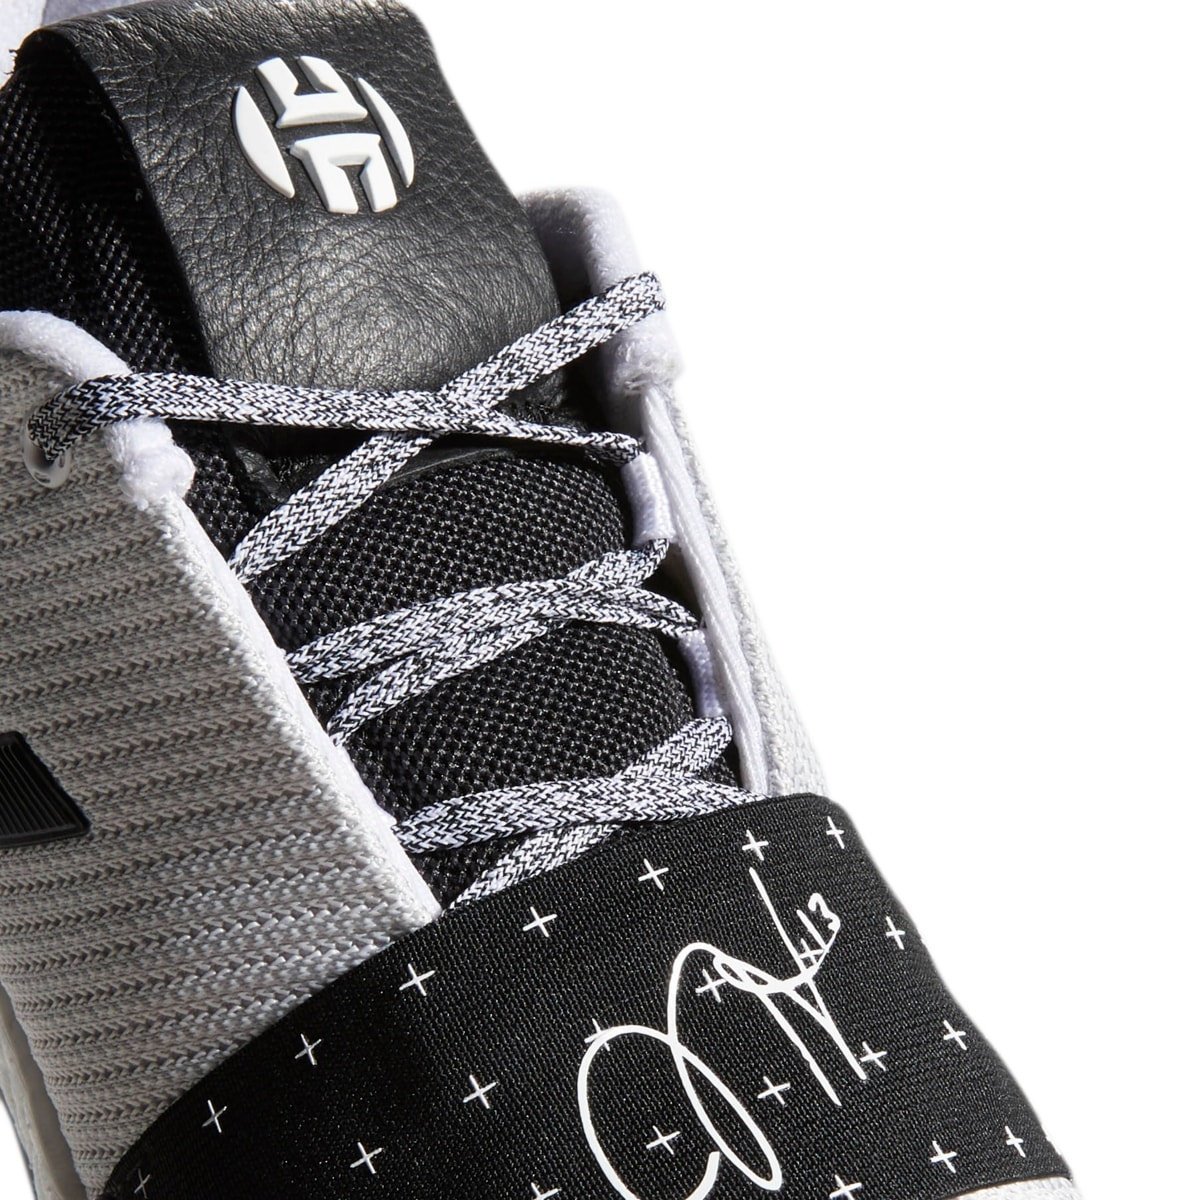 1757b21e3ec Shop Adidas Mens Harden Vol.3 Boost Basketball Shoes - Free Shipping Today  - Overstock - 27296164